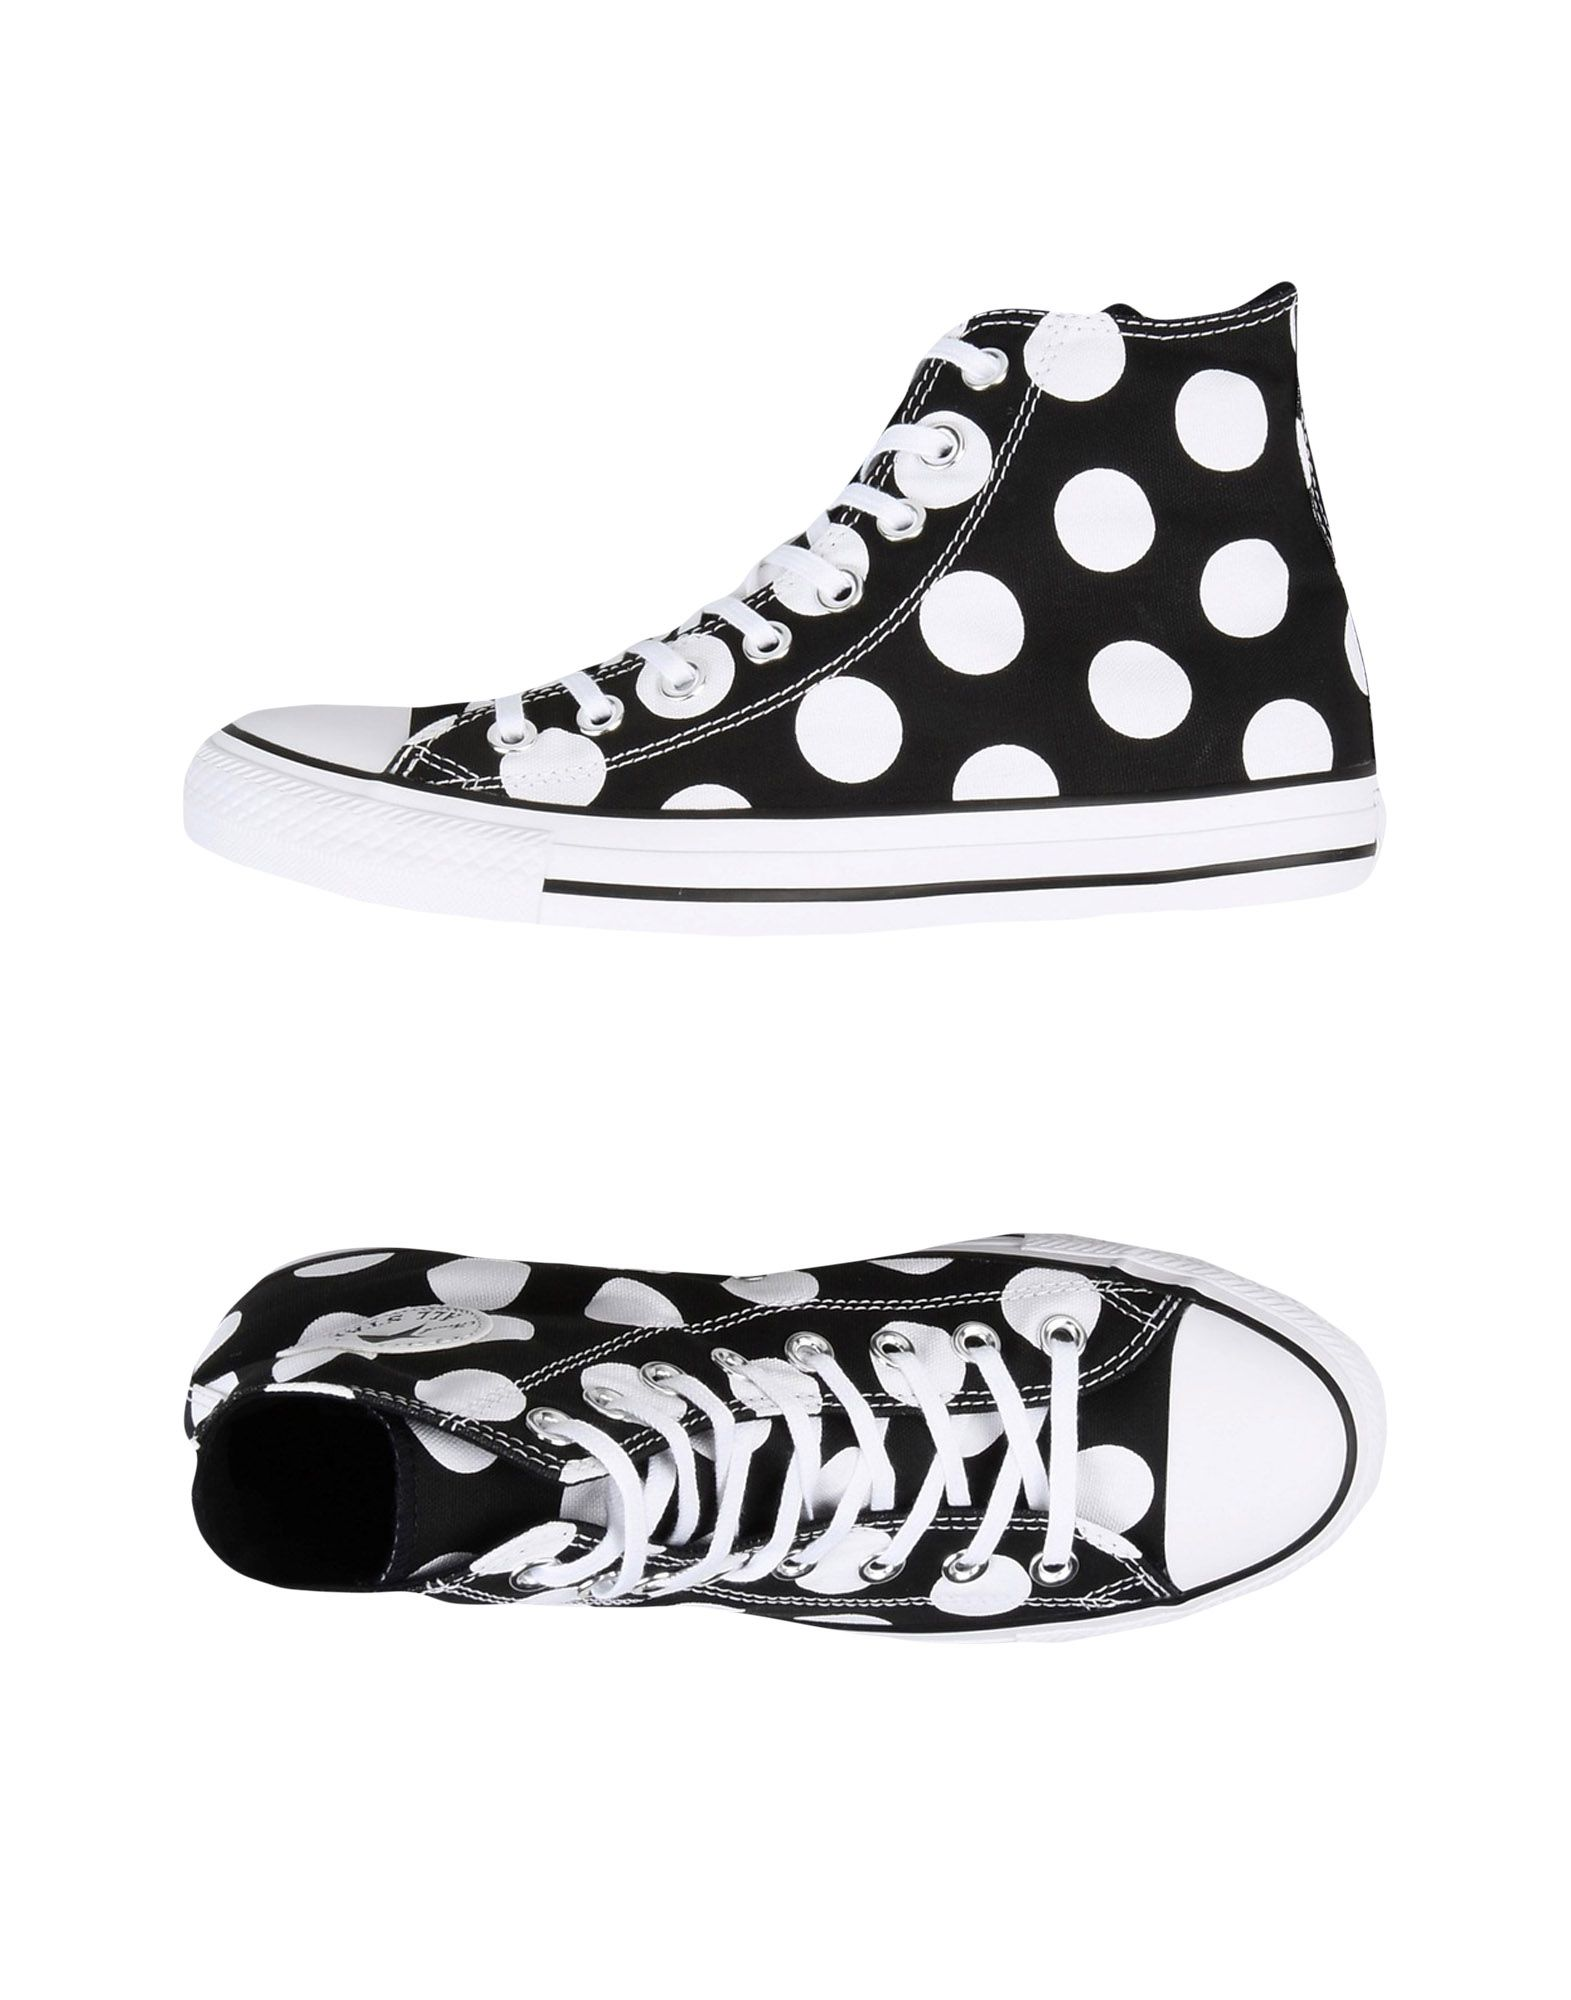 Sneakers Converse All Star Ct As Hi Canvas Print - Femme - Sneakers Converse All Star sur